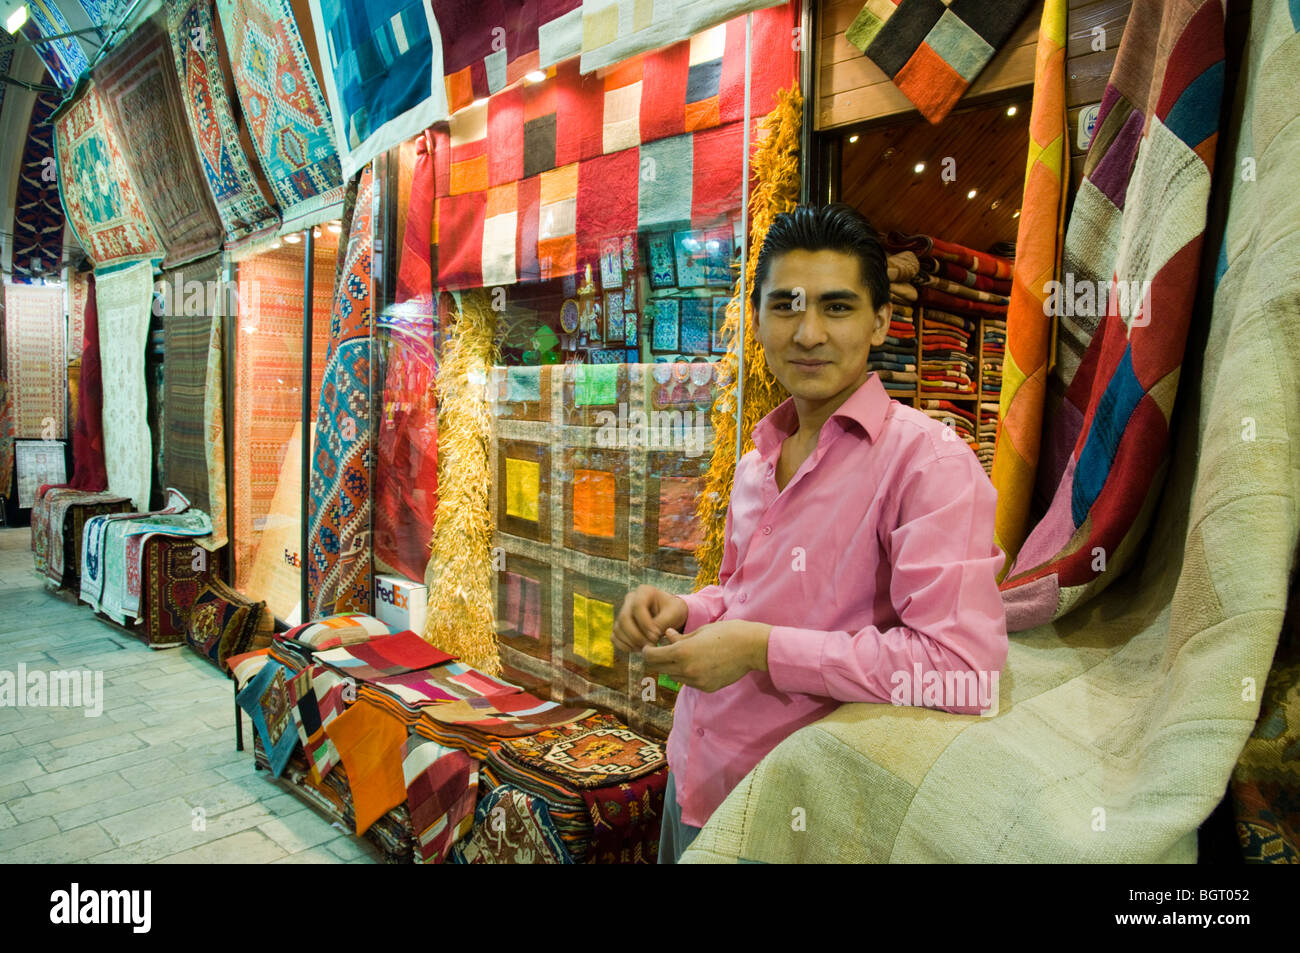 Carpets seller at the Grand Bazaar. Istanbul. Turkey. - Stock Image